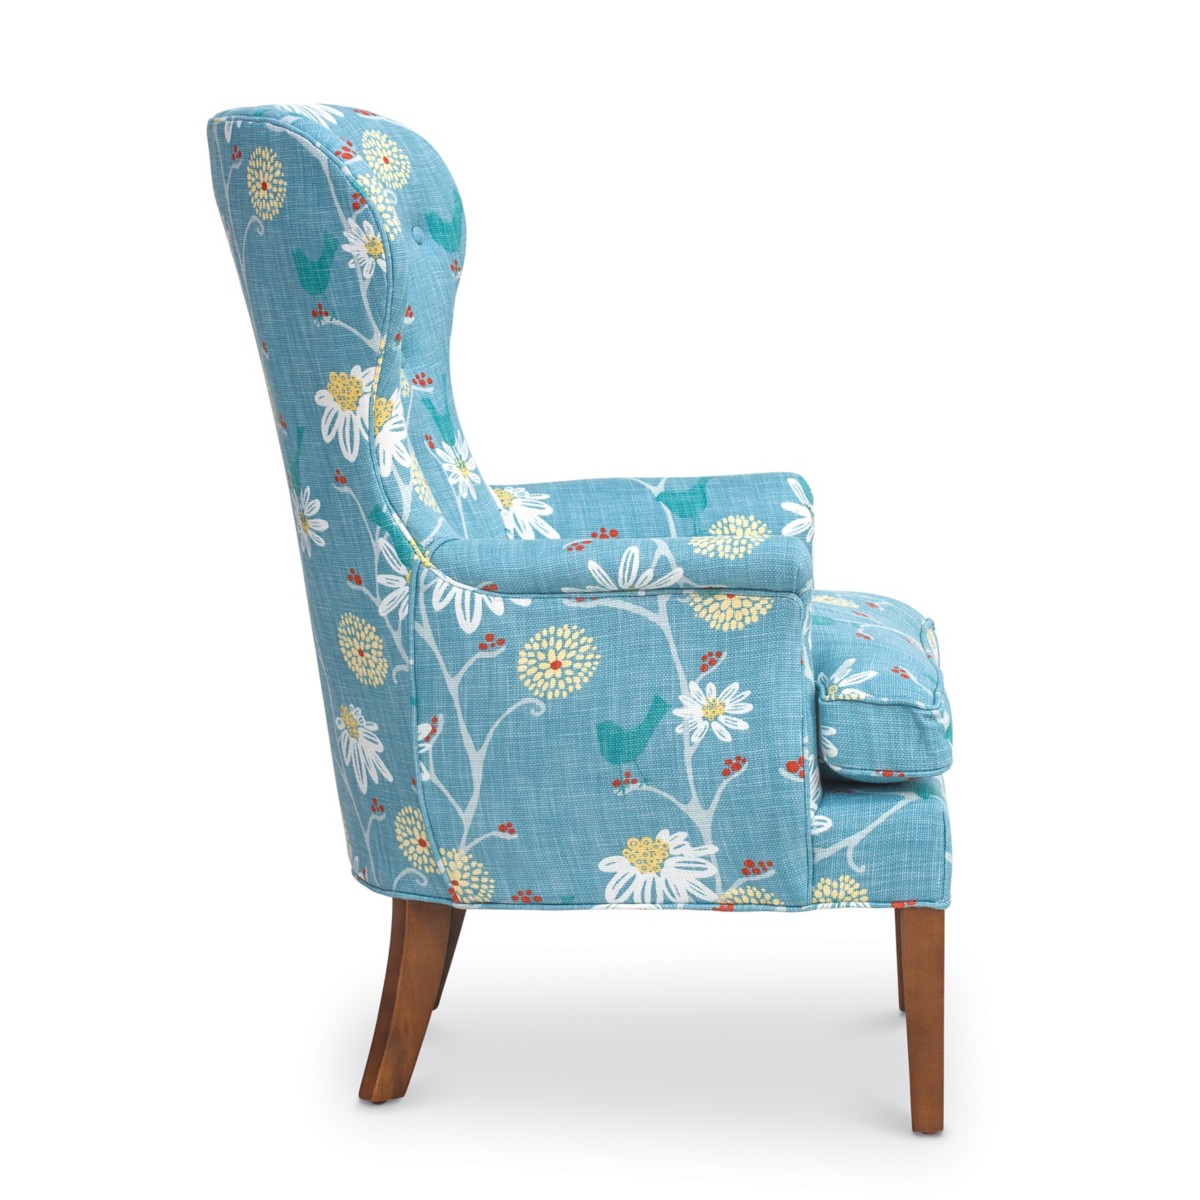 Teal wingback chair - Eloise Wingback Chair